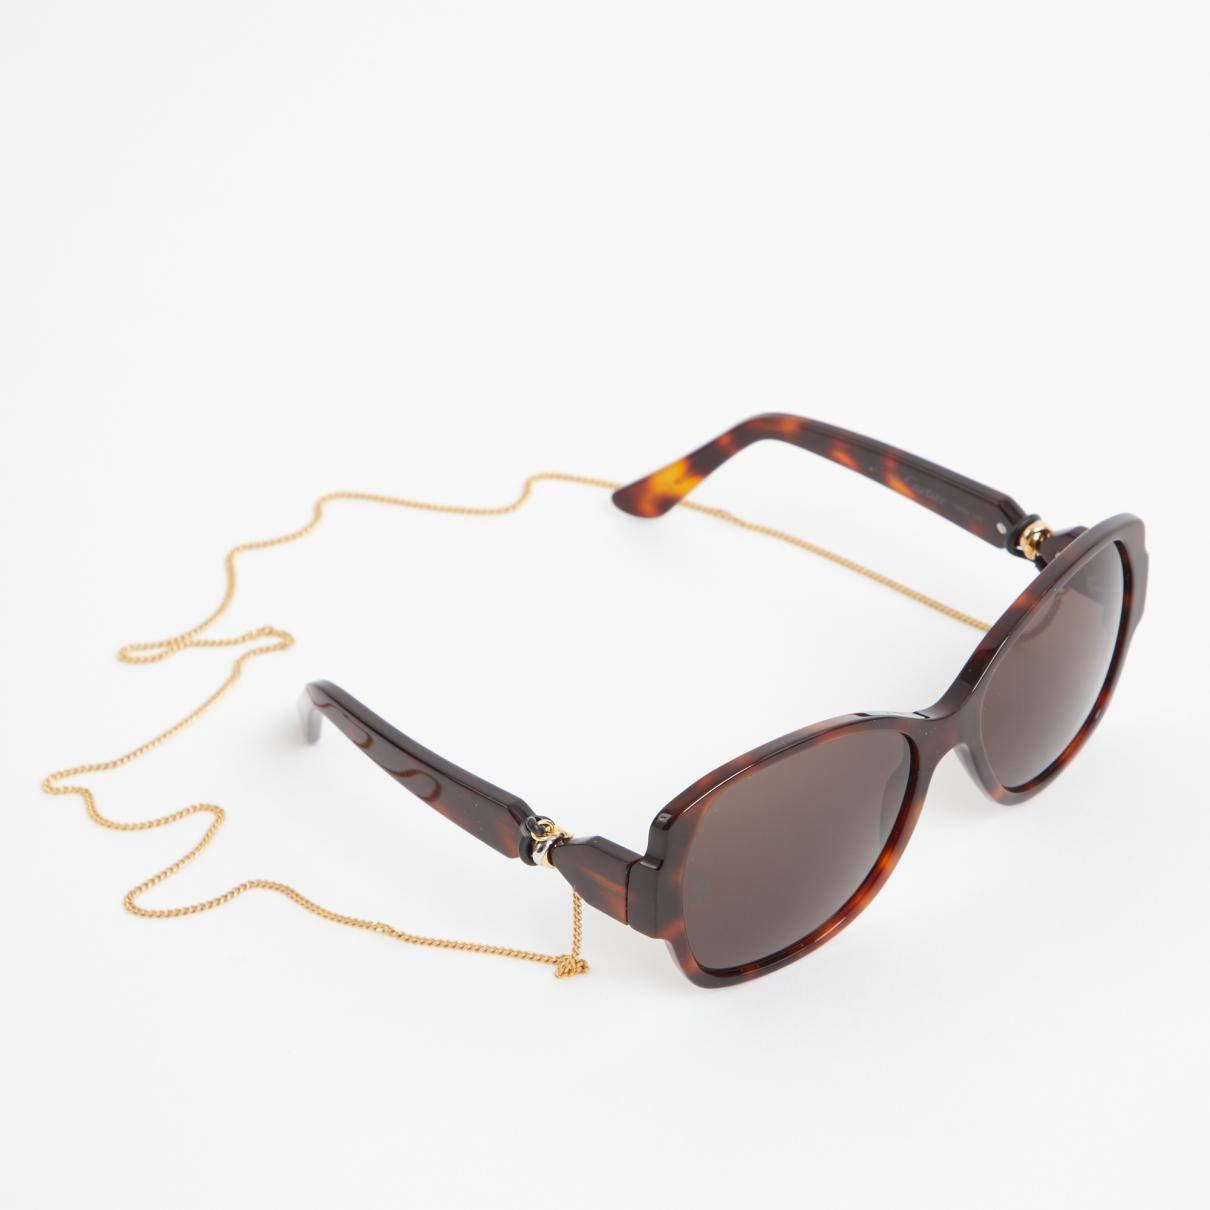 96deed85be88c0 Lyst - Cartier Sunglasses in Brown